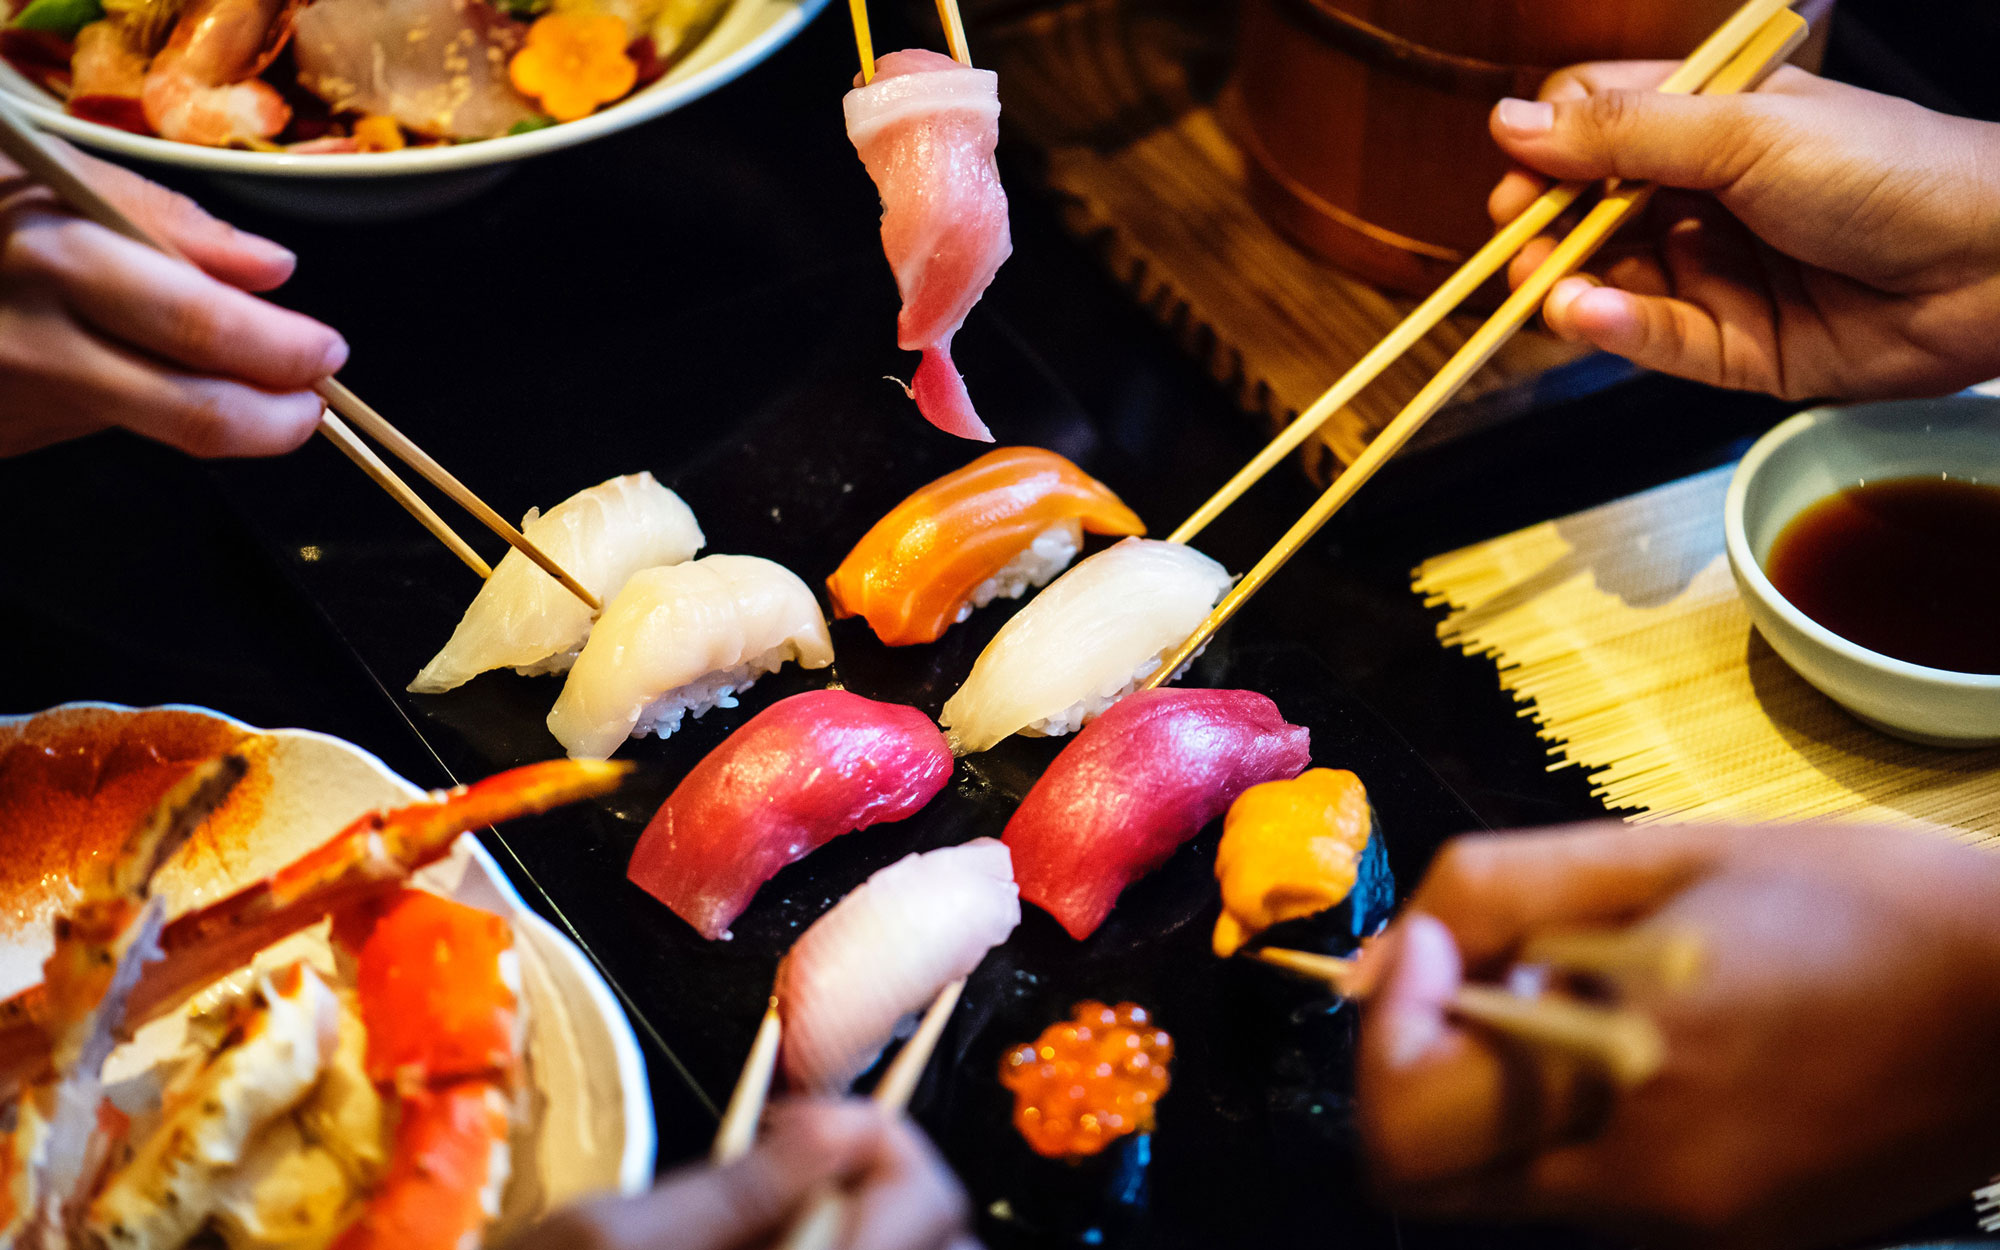 Healthy eating trend in conference food sushi japanese food credit rawpixel